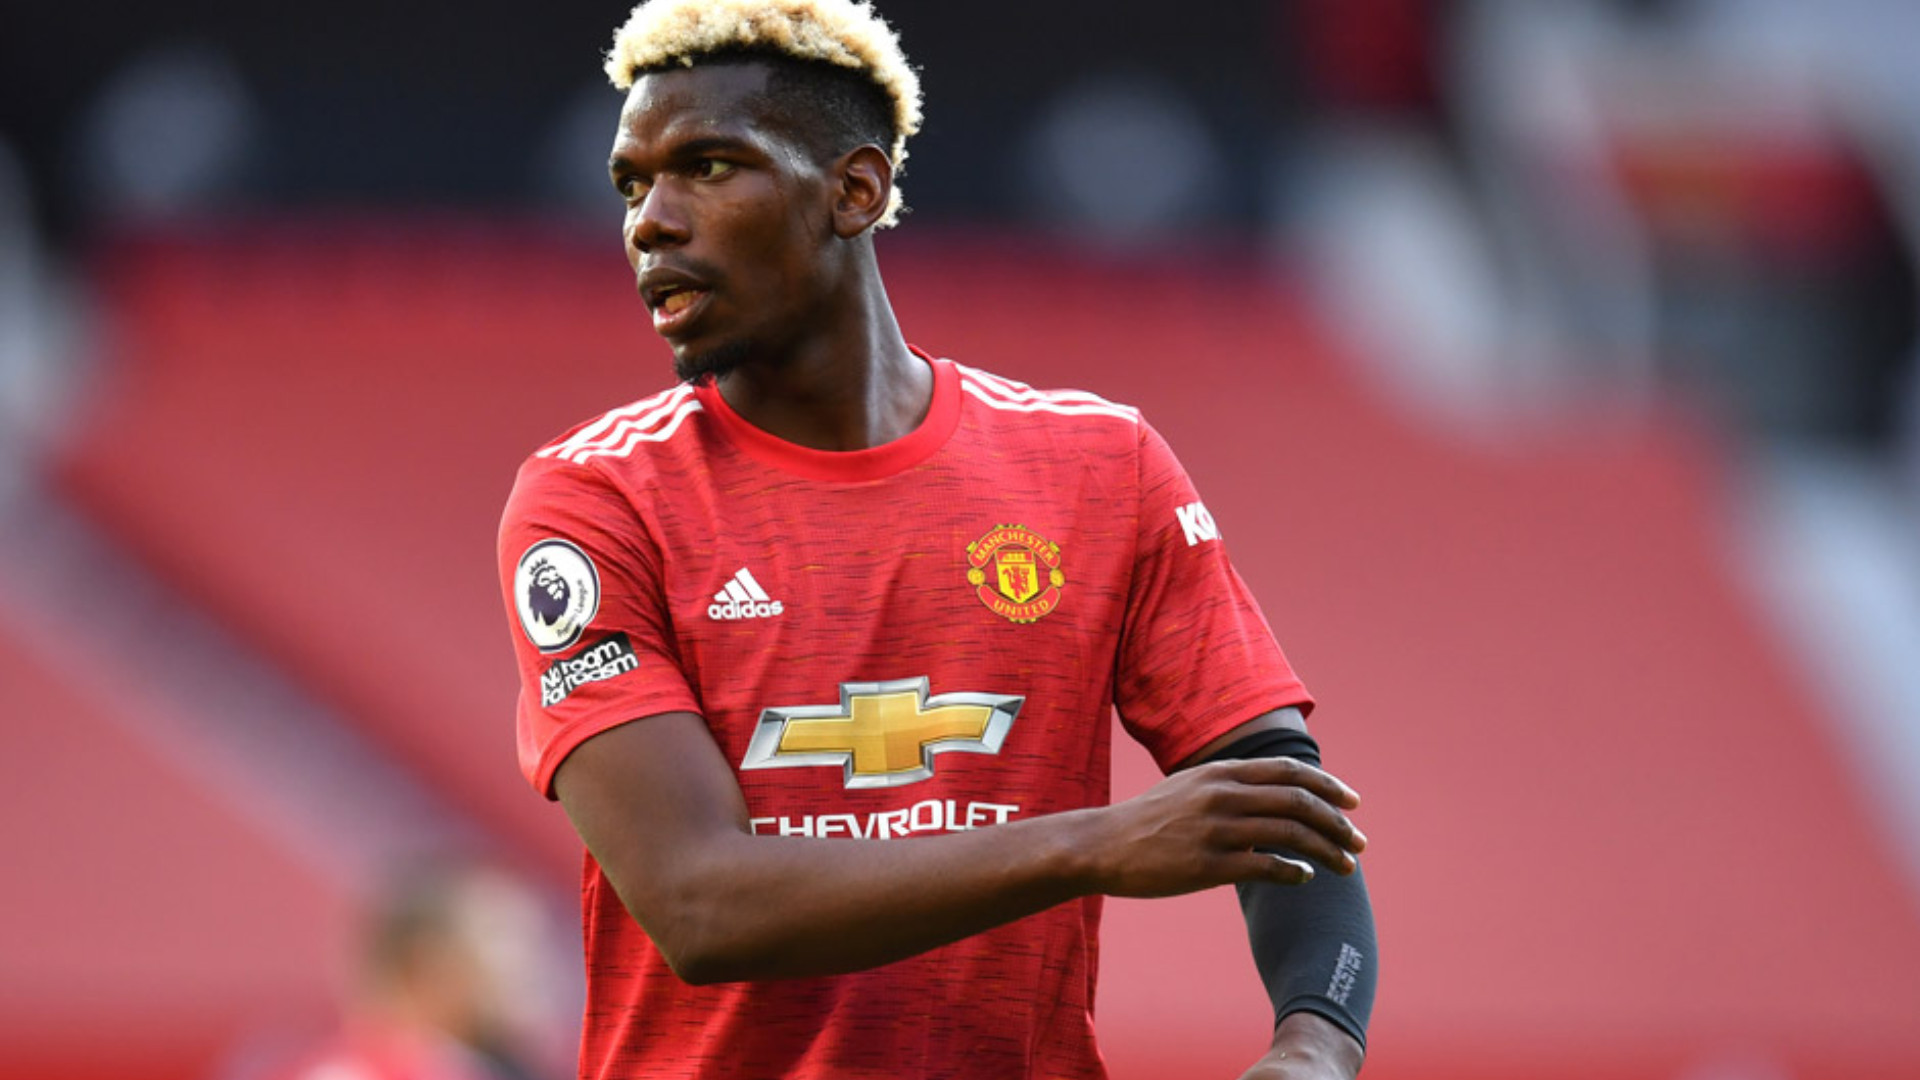 'I would love to have Pogba with us' - Wijnaldum eager for 'fantastic' Man Utd midfielder to join PSG